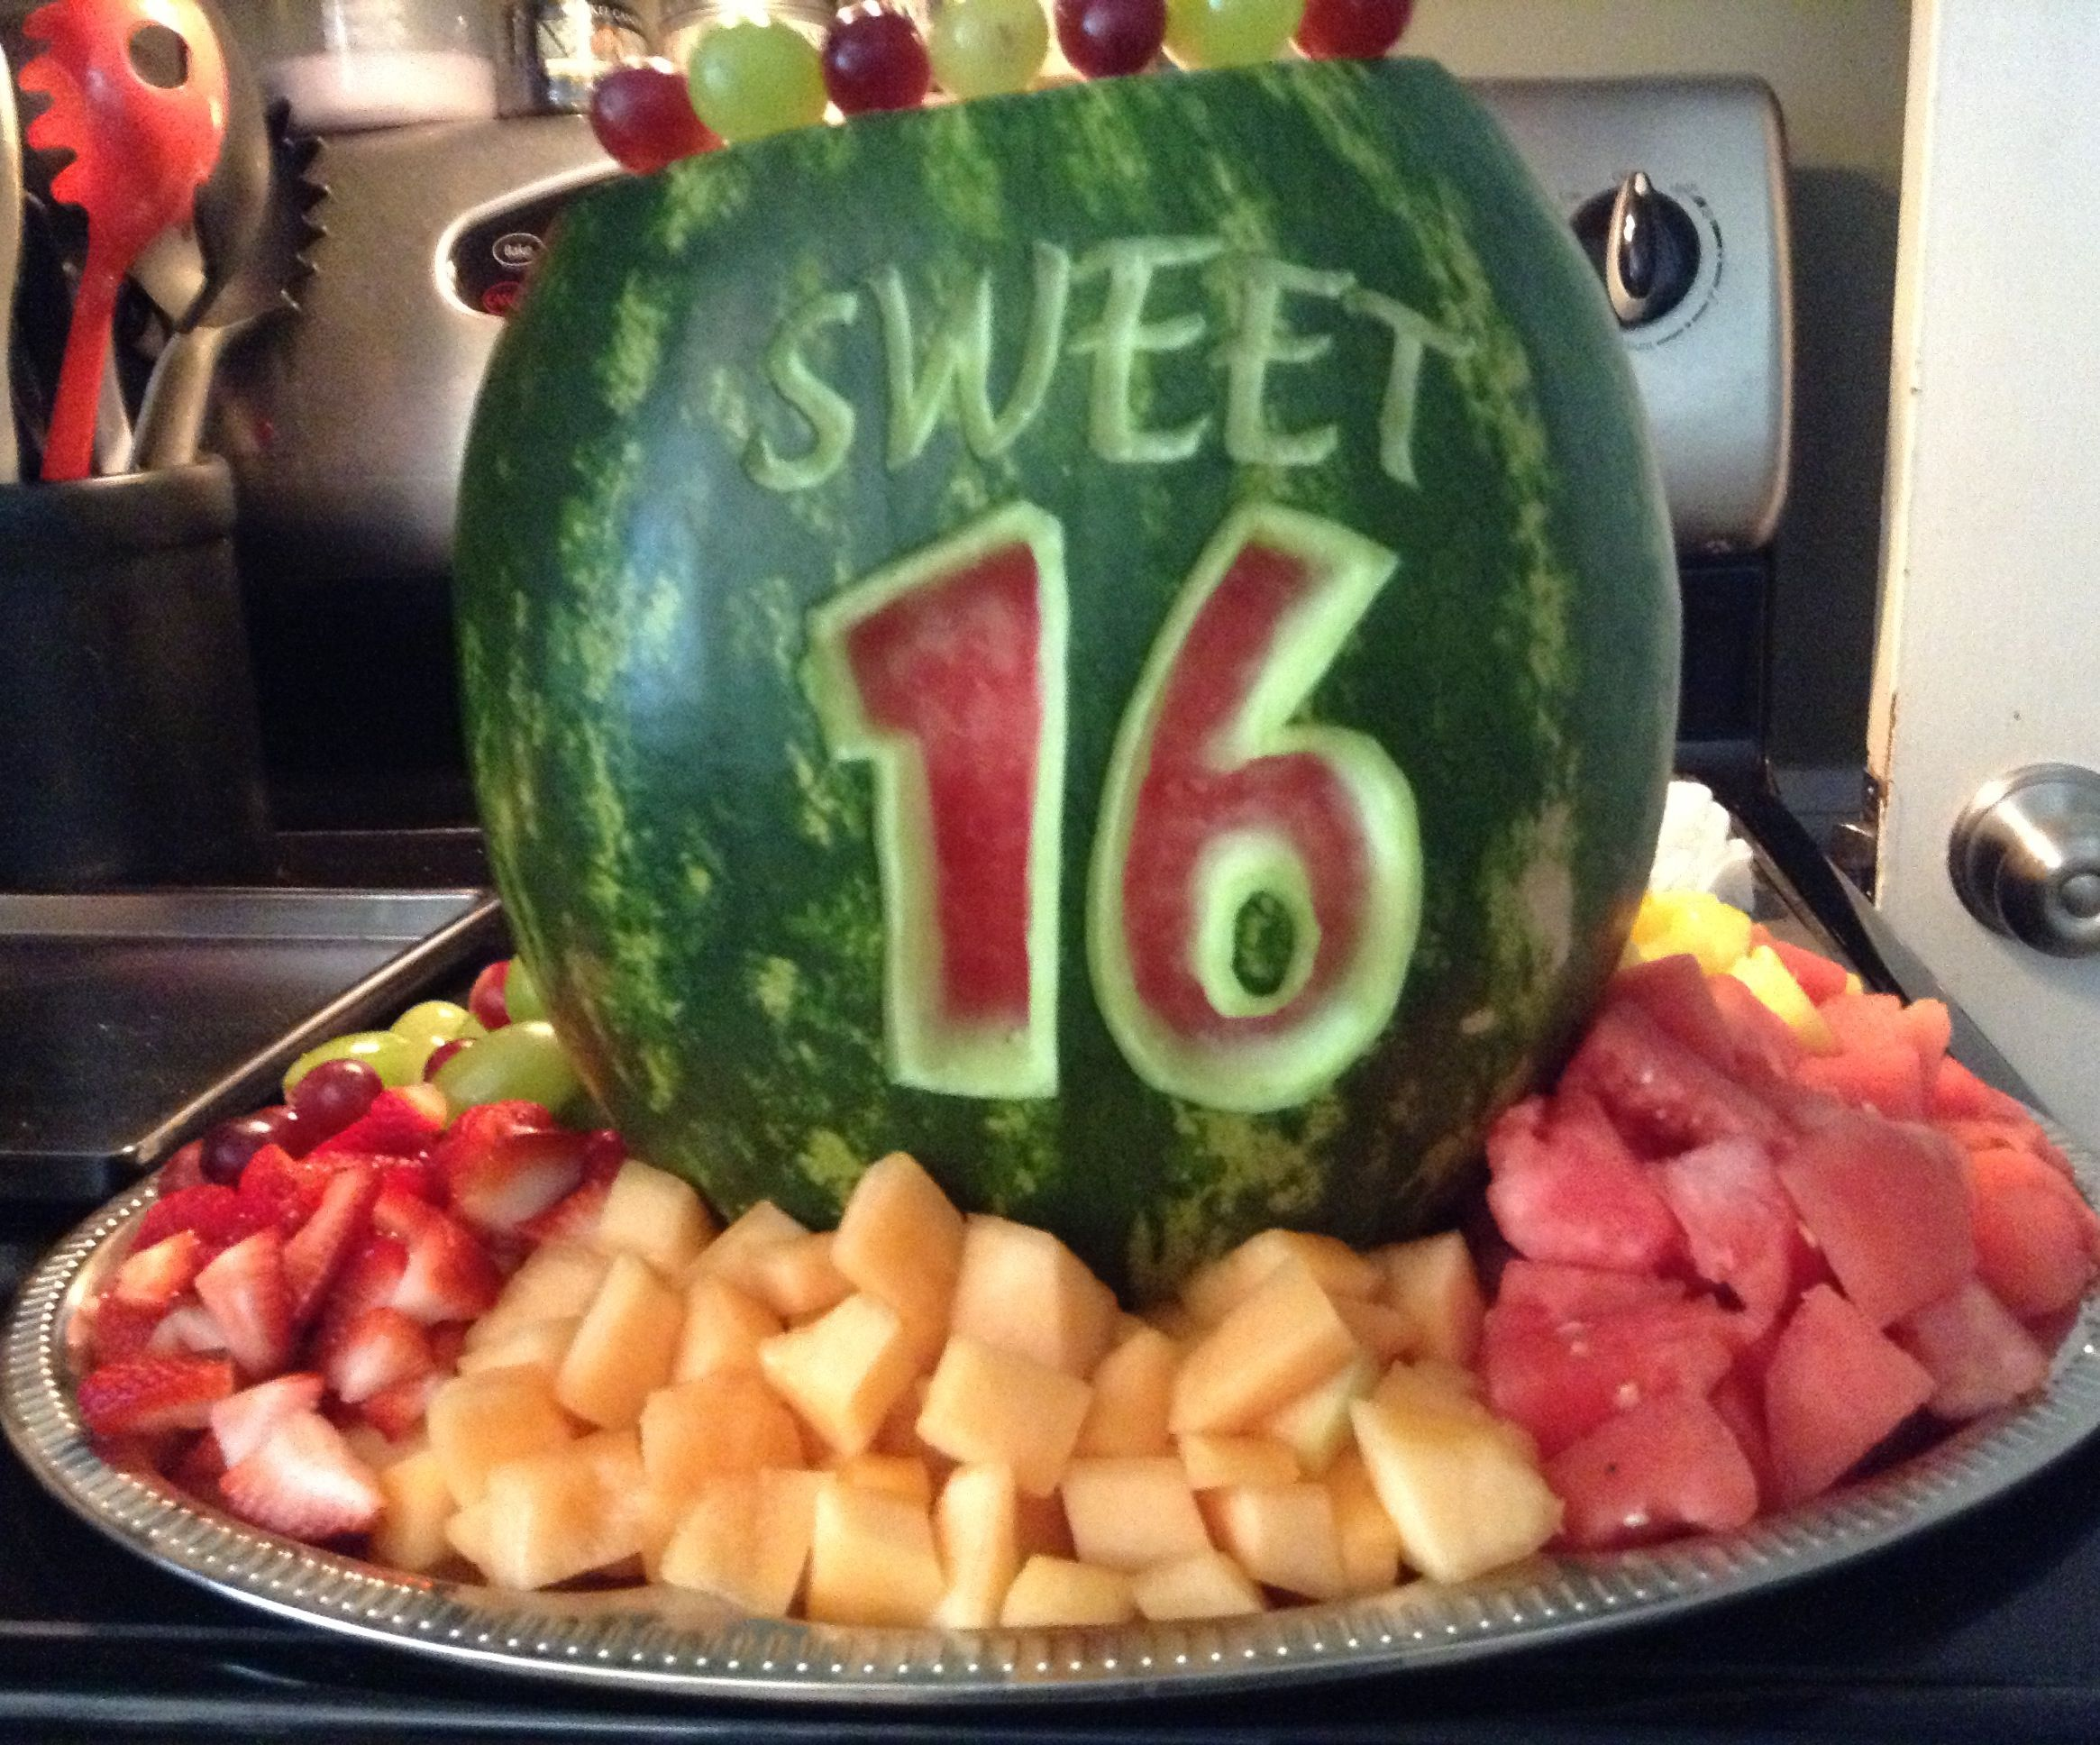 Ambers sweet watermelon i carved cooking ideas pinterest